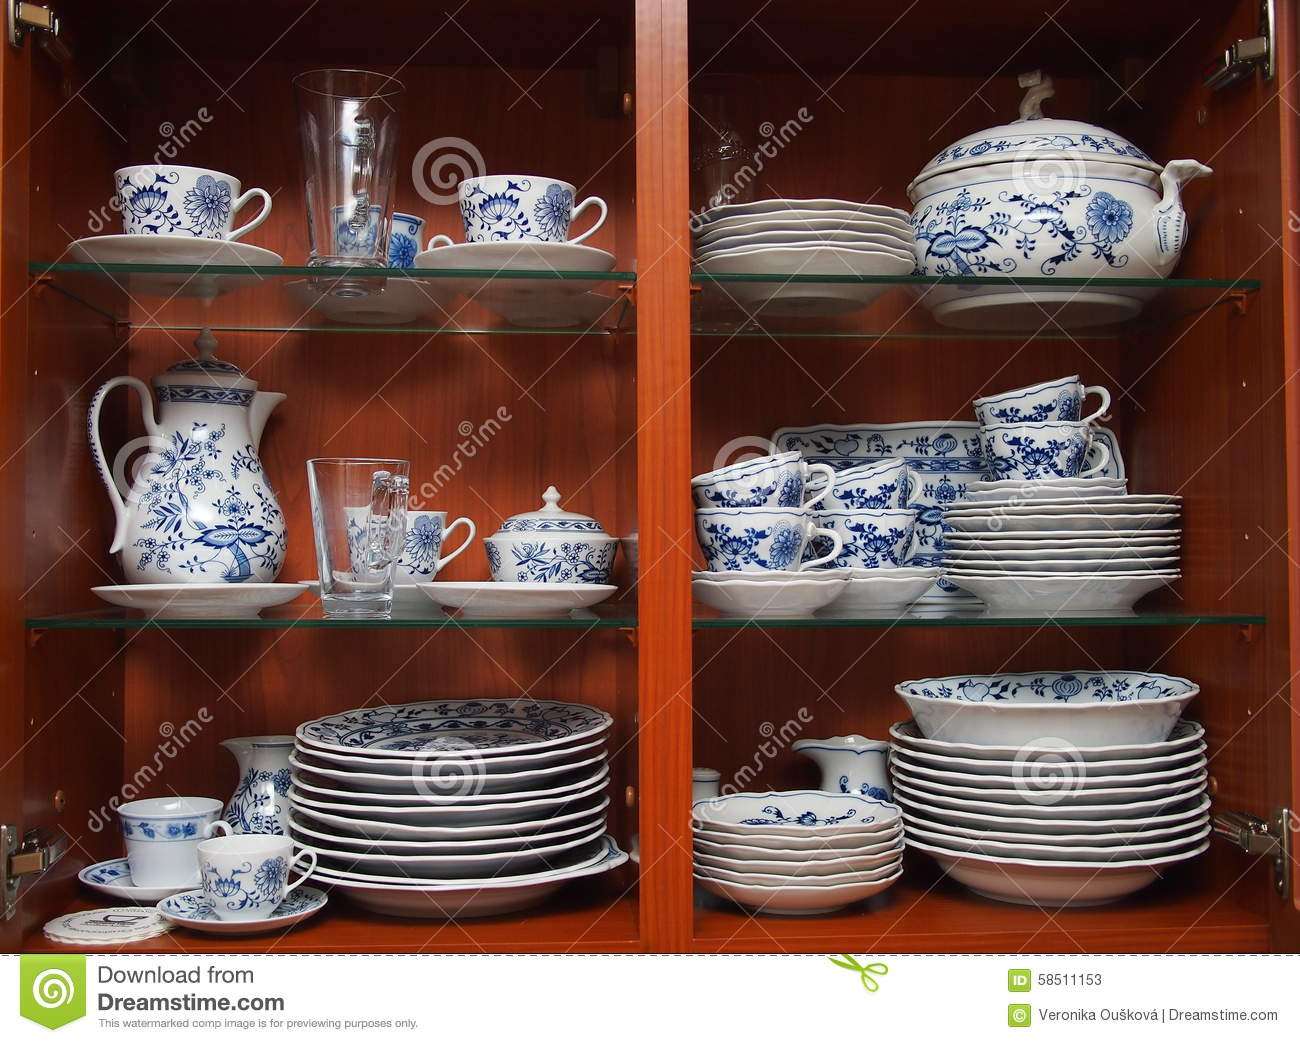 Buffet Vaisselle Crockery In Wooden Kitchen Cabinet Stock Photo - Image